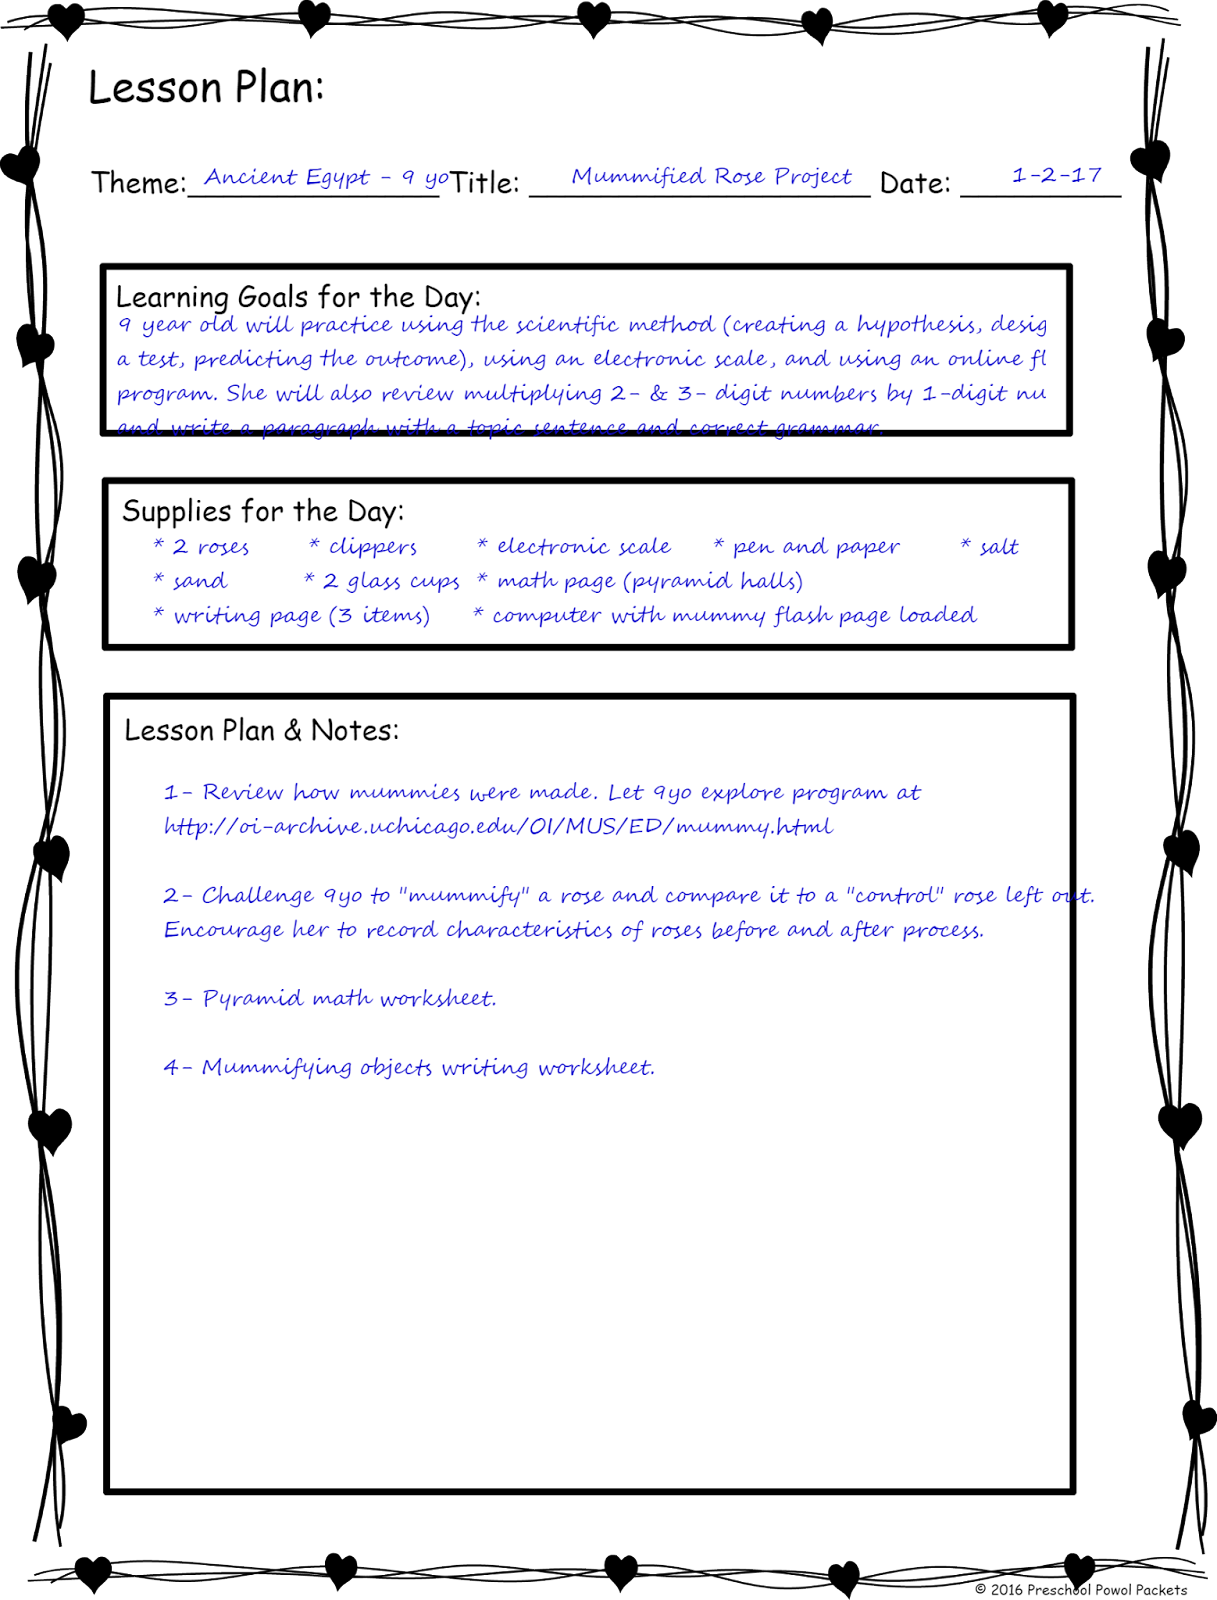 two year old lesson plan template - how to design a stem homeschool curriculum preschool